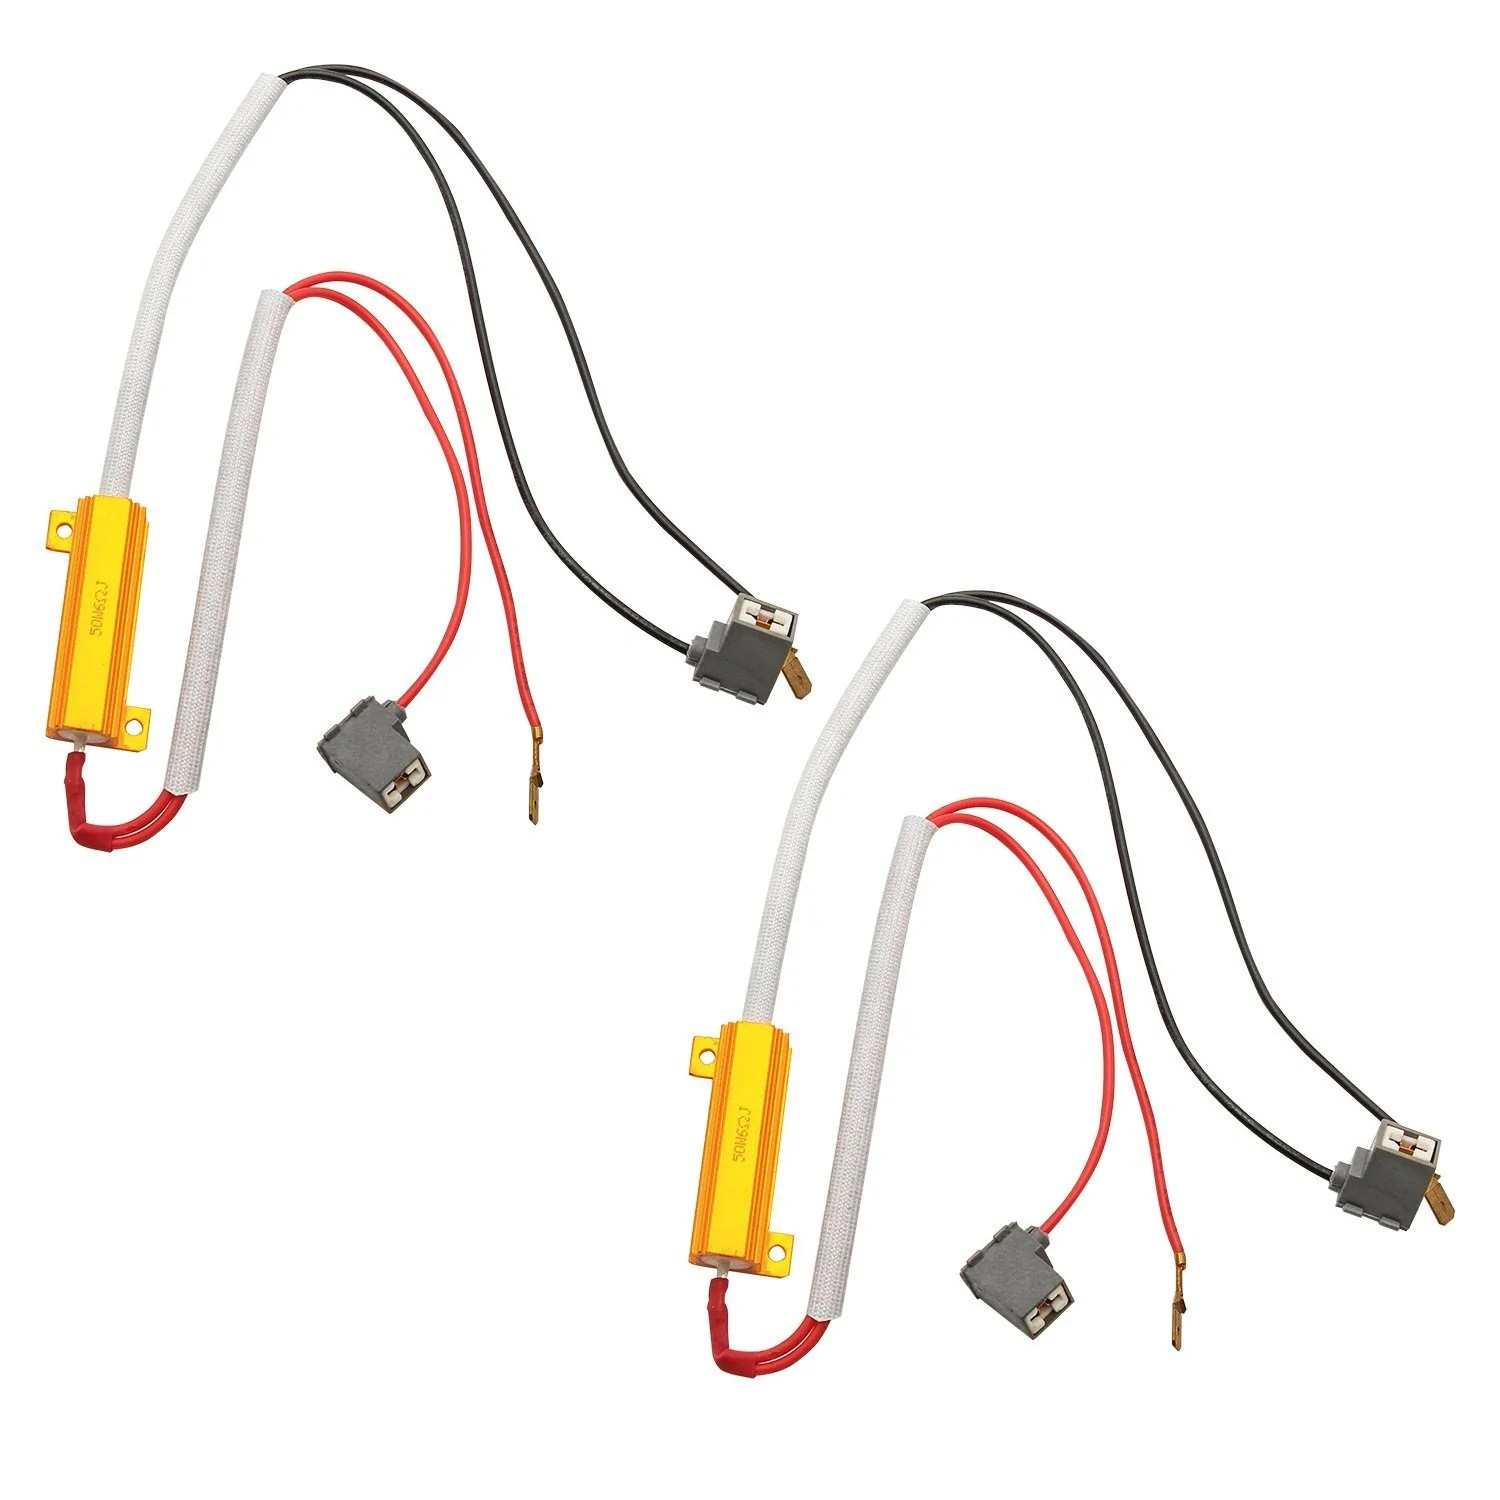 h1 h3 hid led 50w 6ohm resistor relay kit wiring harness adapter  [ 1500 x 1500 Pixel ]